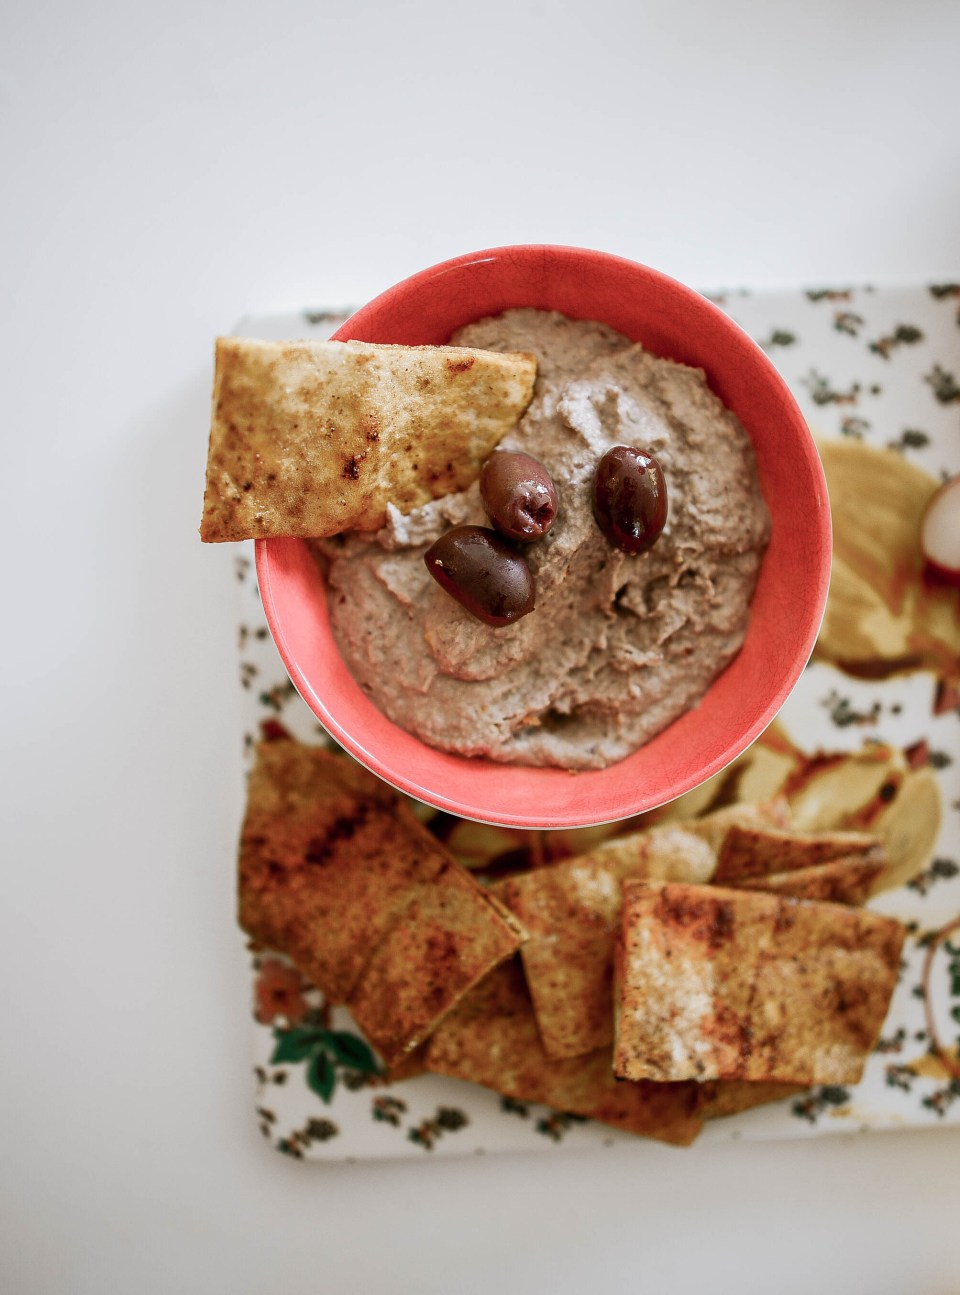 How to Make Hummus and homemade pita chips- Easy Hummus Recipe to Follow